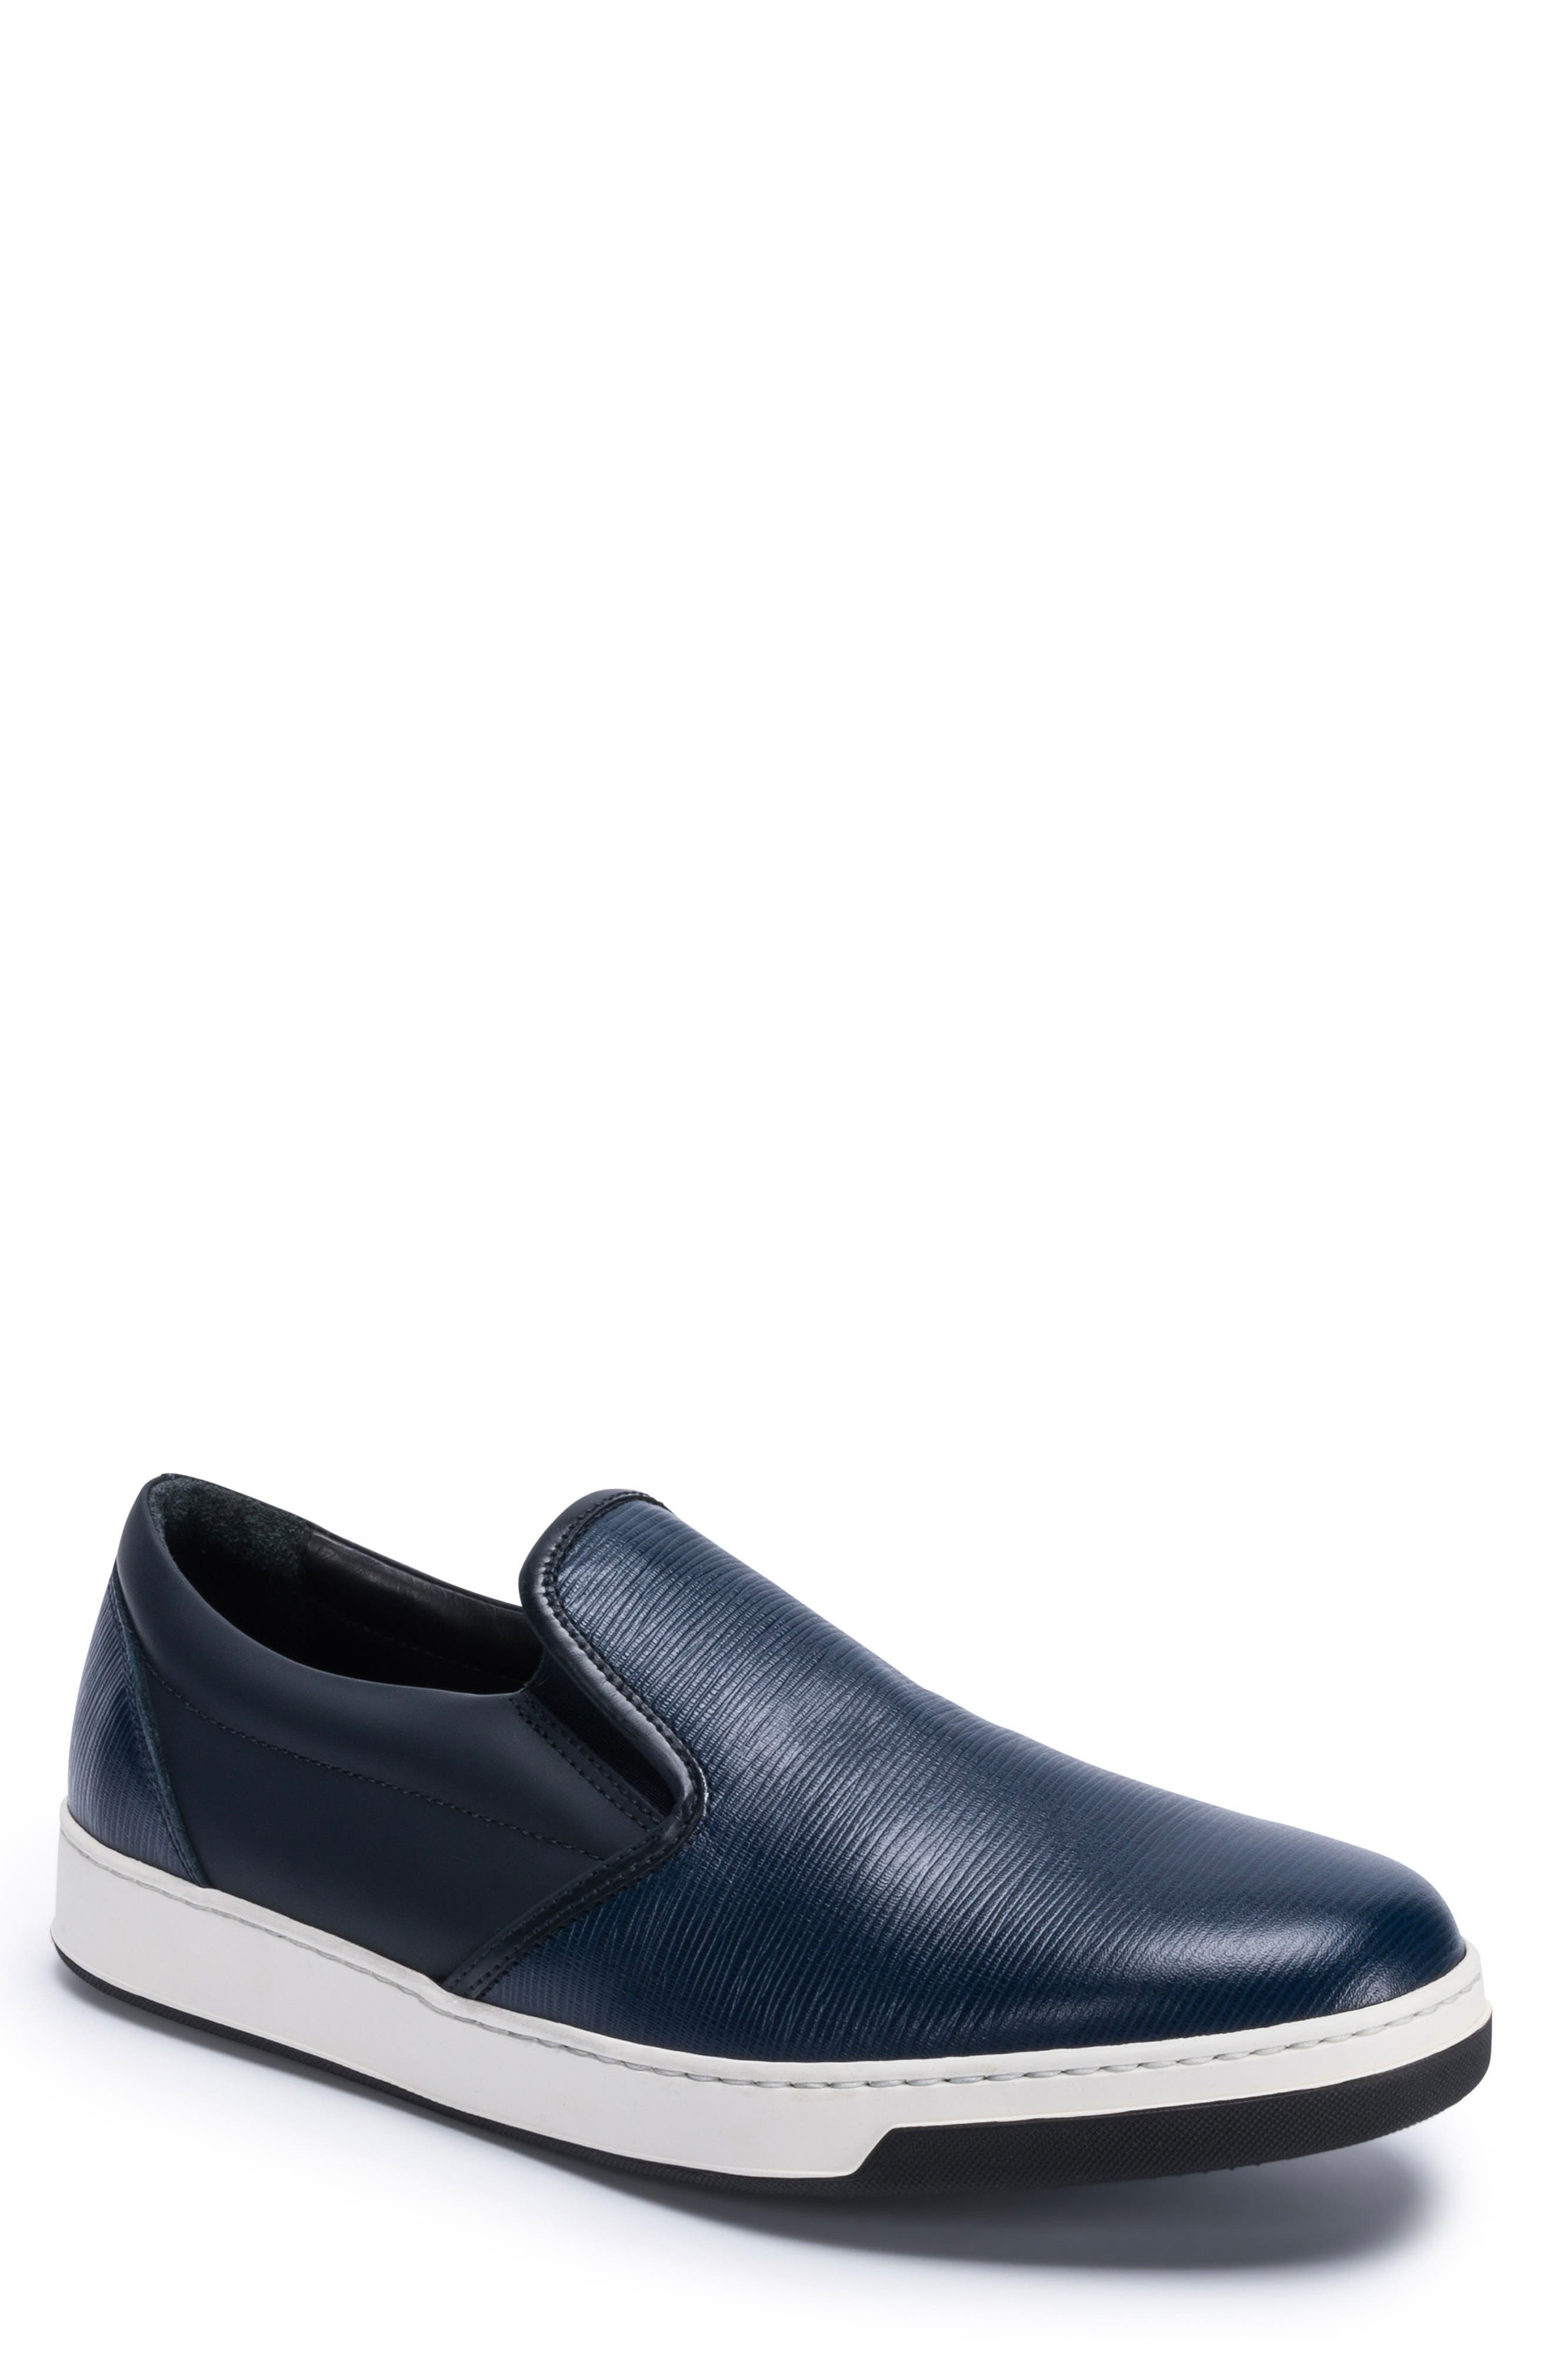 Santorini Slip-On Sneaker,                         Main,                         color, Blue